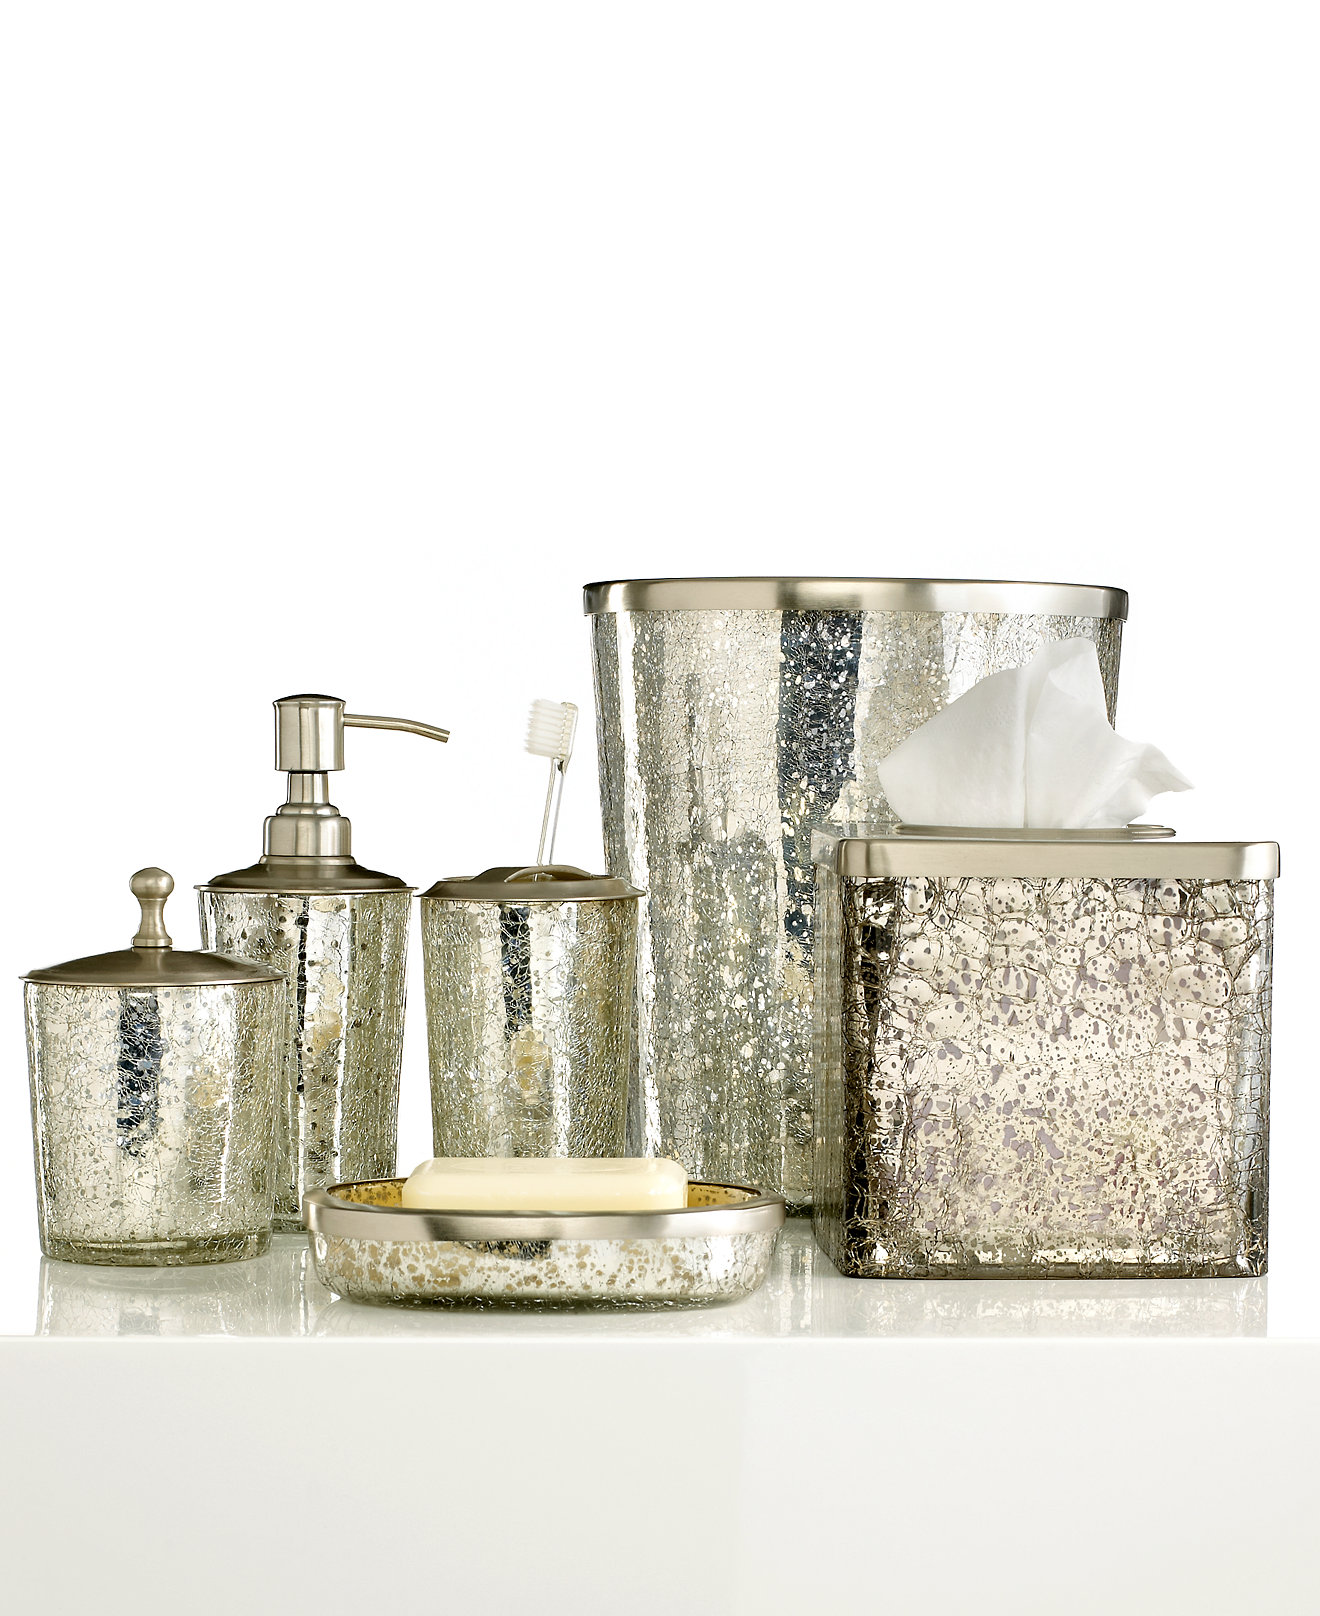 Dkny Bathroom Accessories Paradigm Bath Accessories Crackle Glass Ice Collection Bathroom